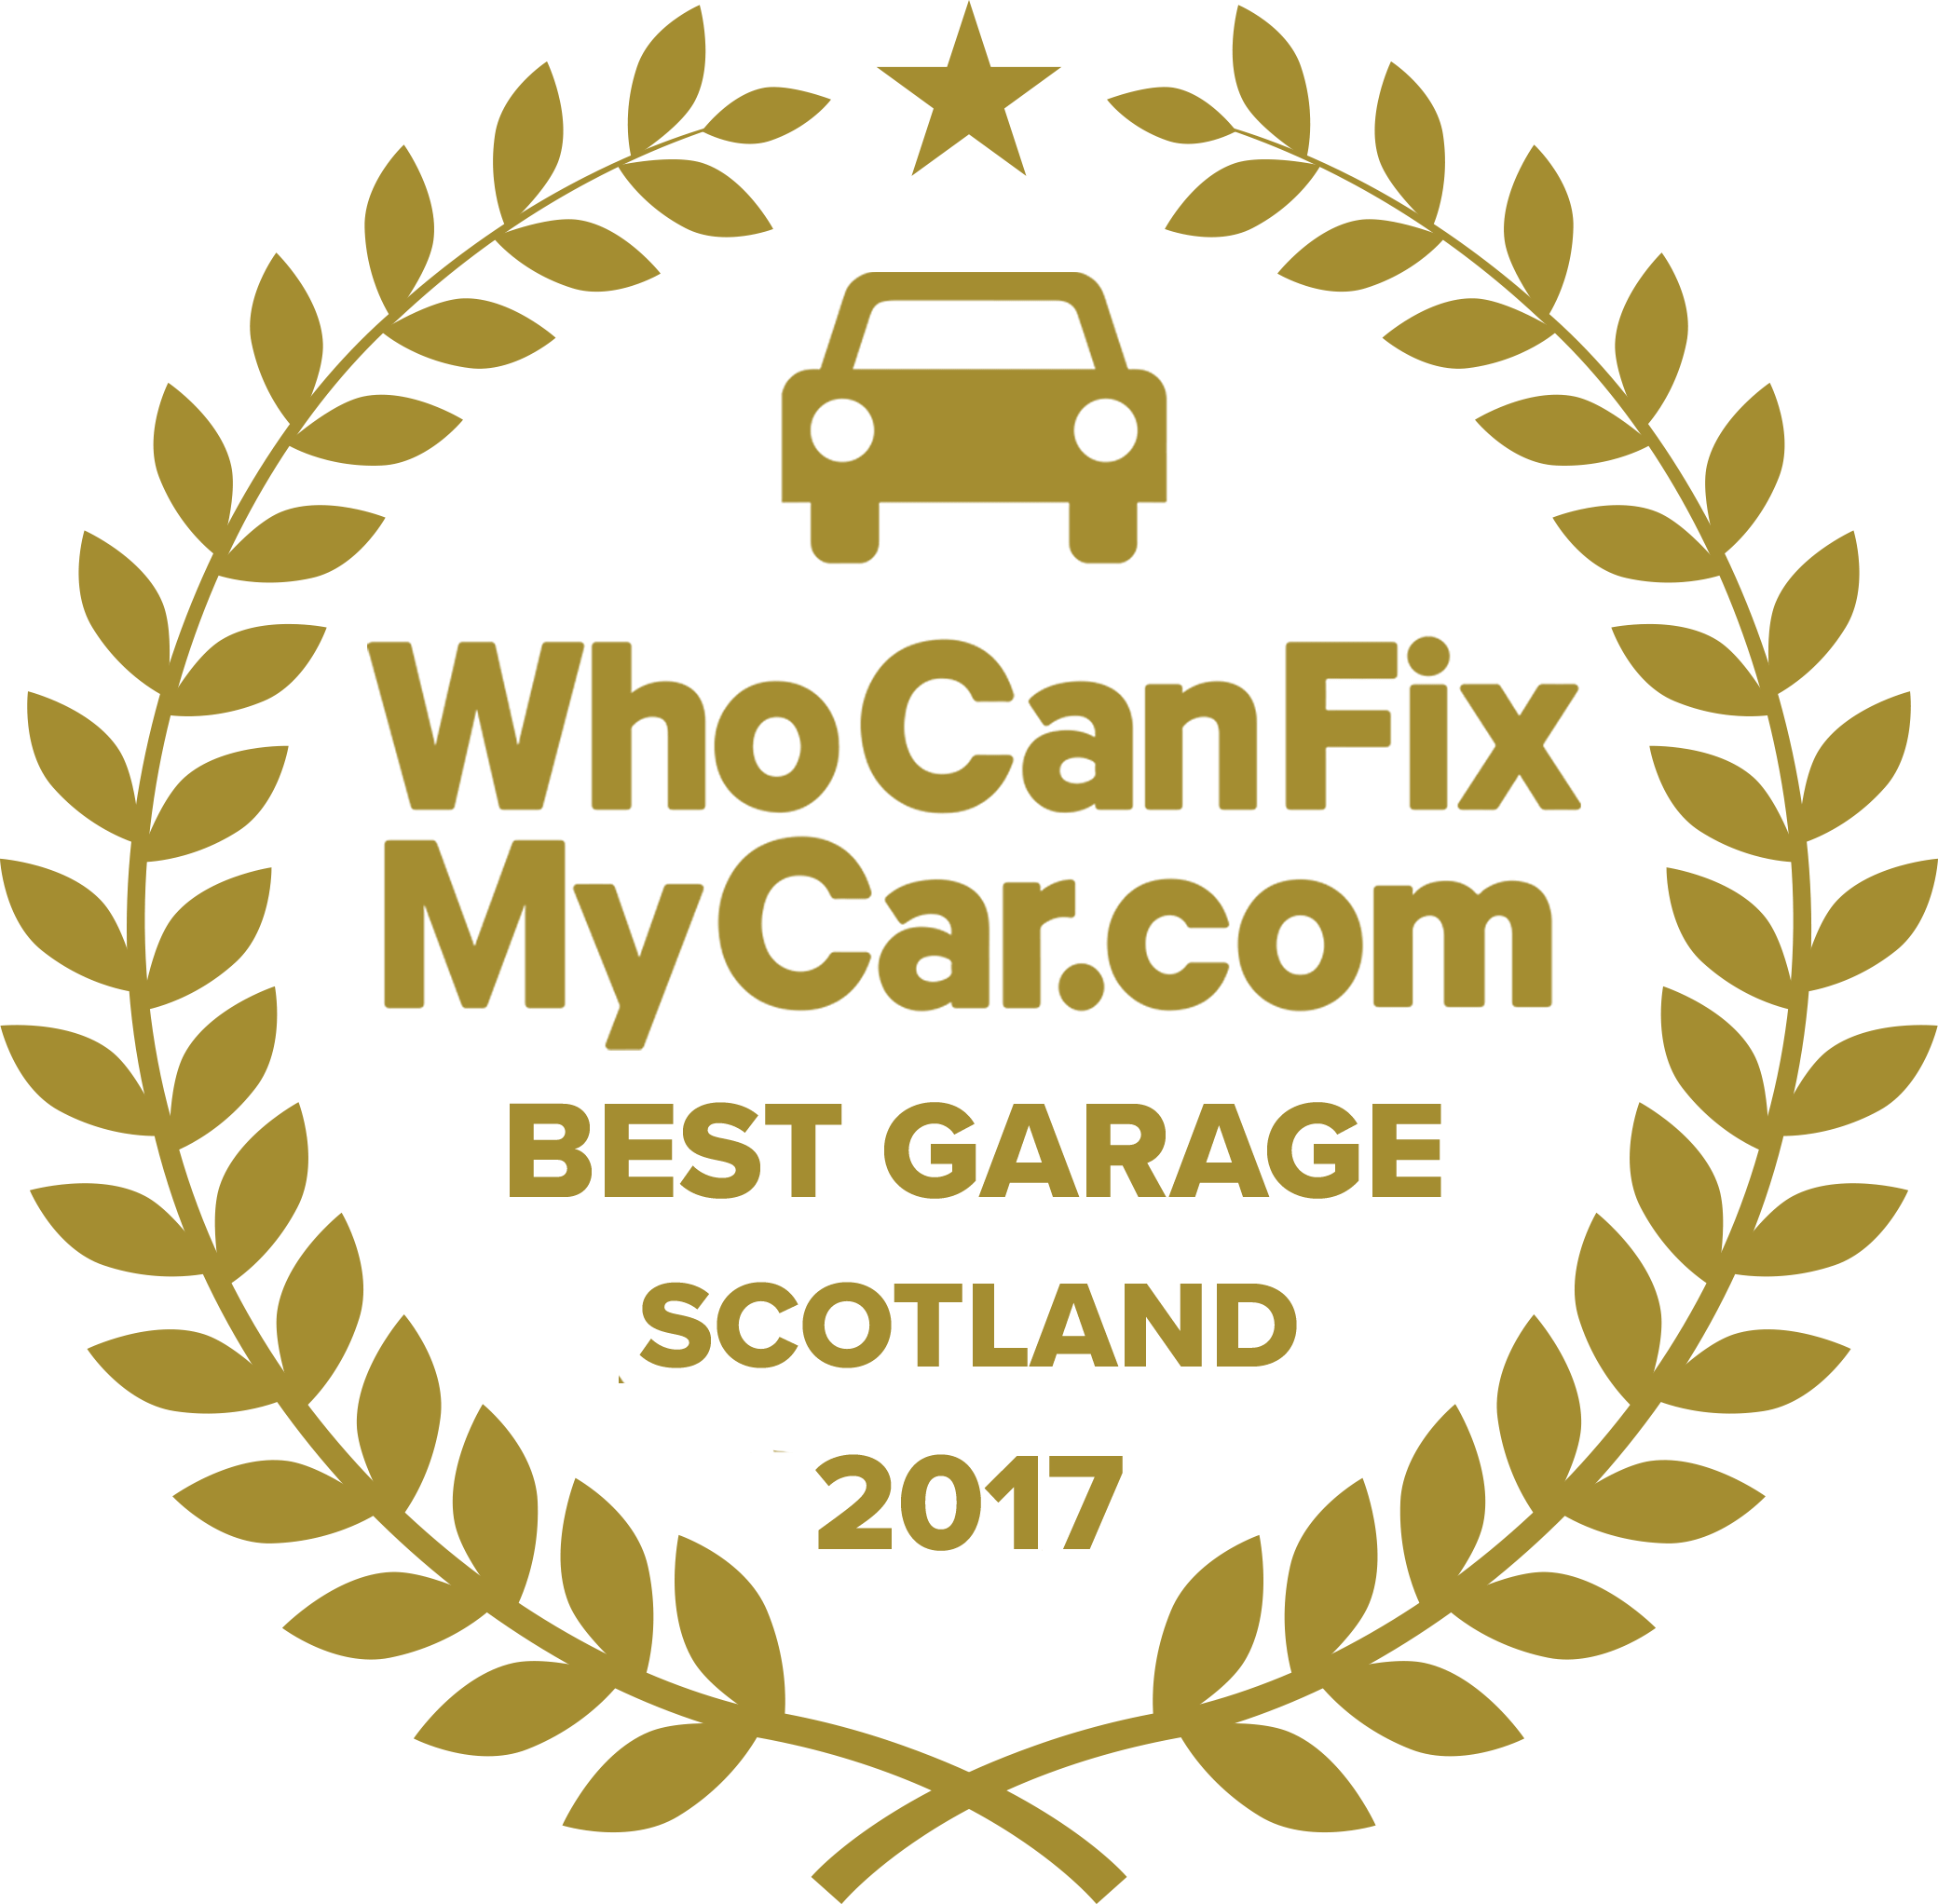 Best Garage 2017 - Scotland